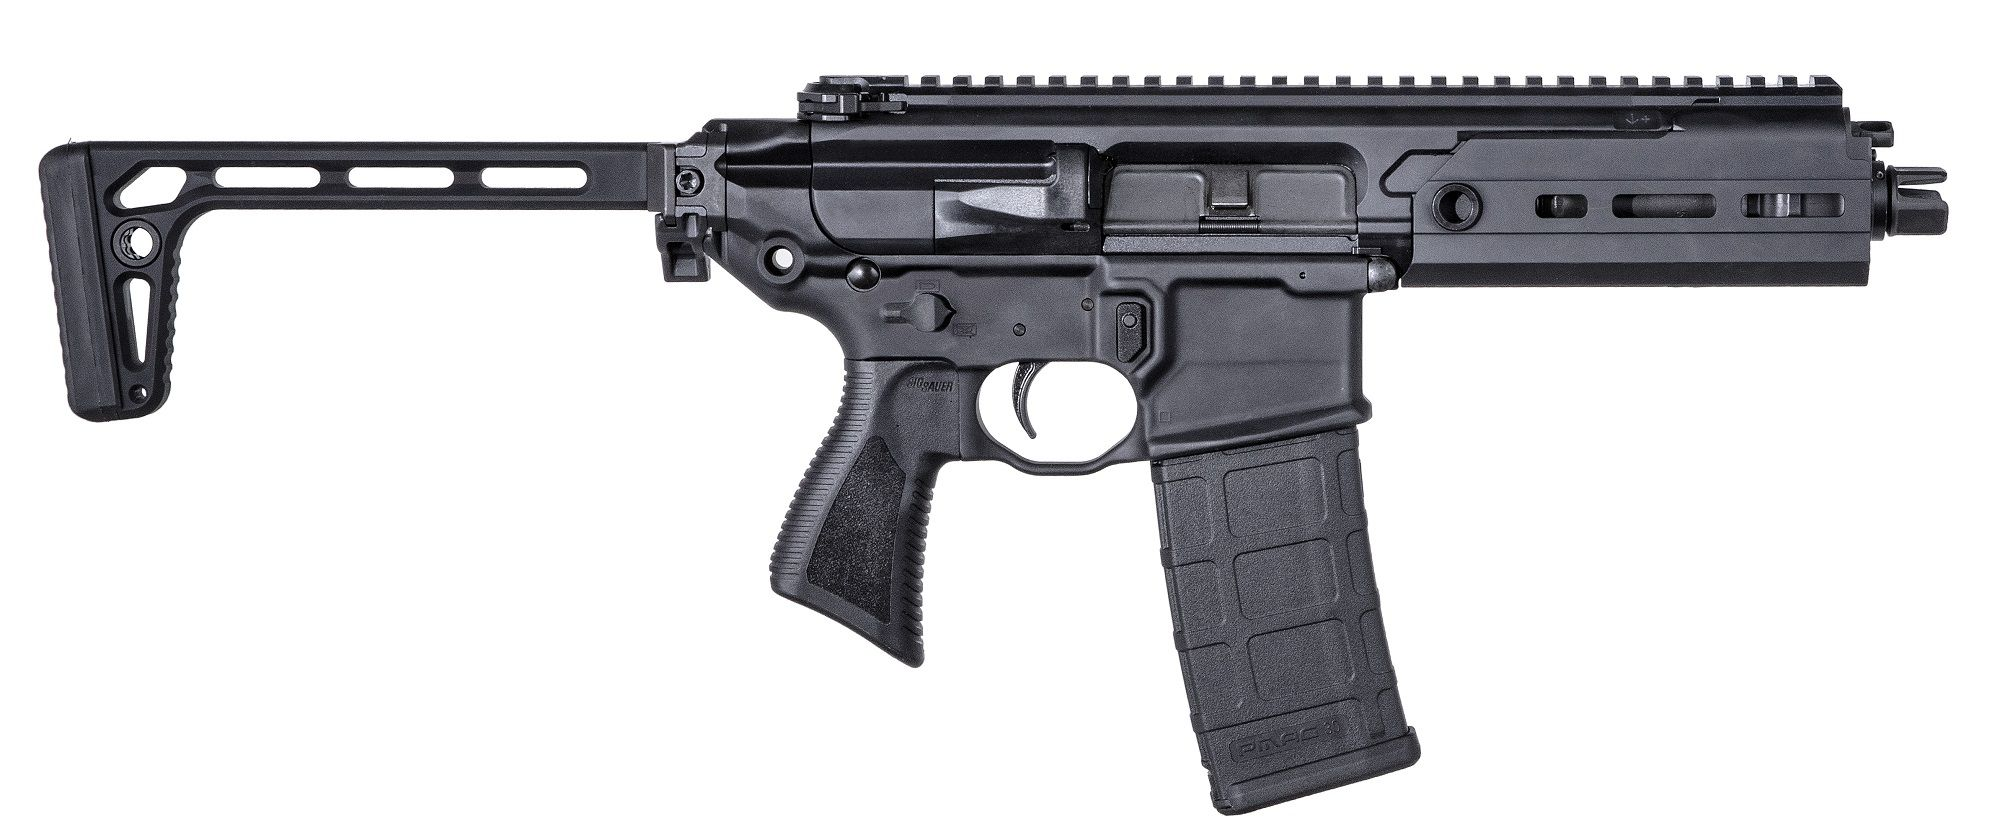 SIG Sauer's MCX RATTLER is the baseline in the USSOCOM PDW Conversion Kit, which is currently under evaluation with NSWC Crane. (Photo: (SIG Sauer)